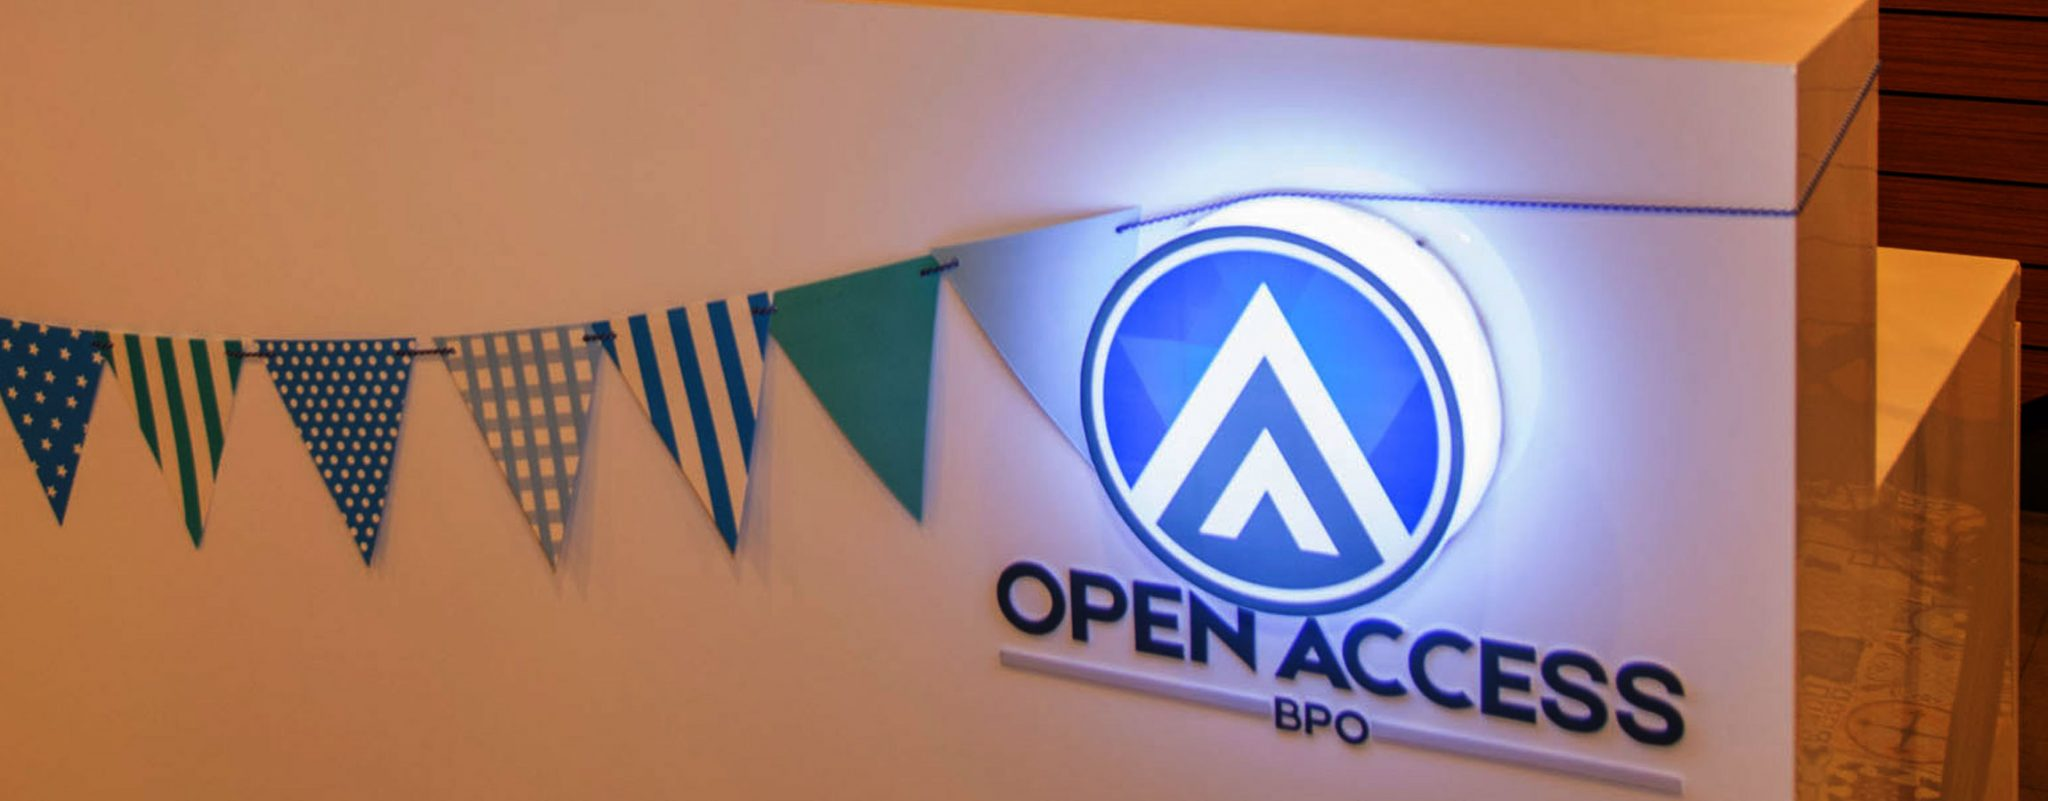 A look back at Open Access BPO's 2019 milestones